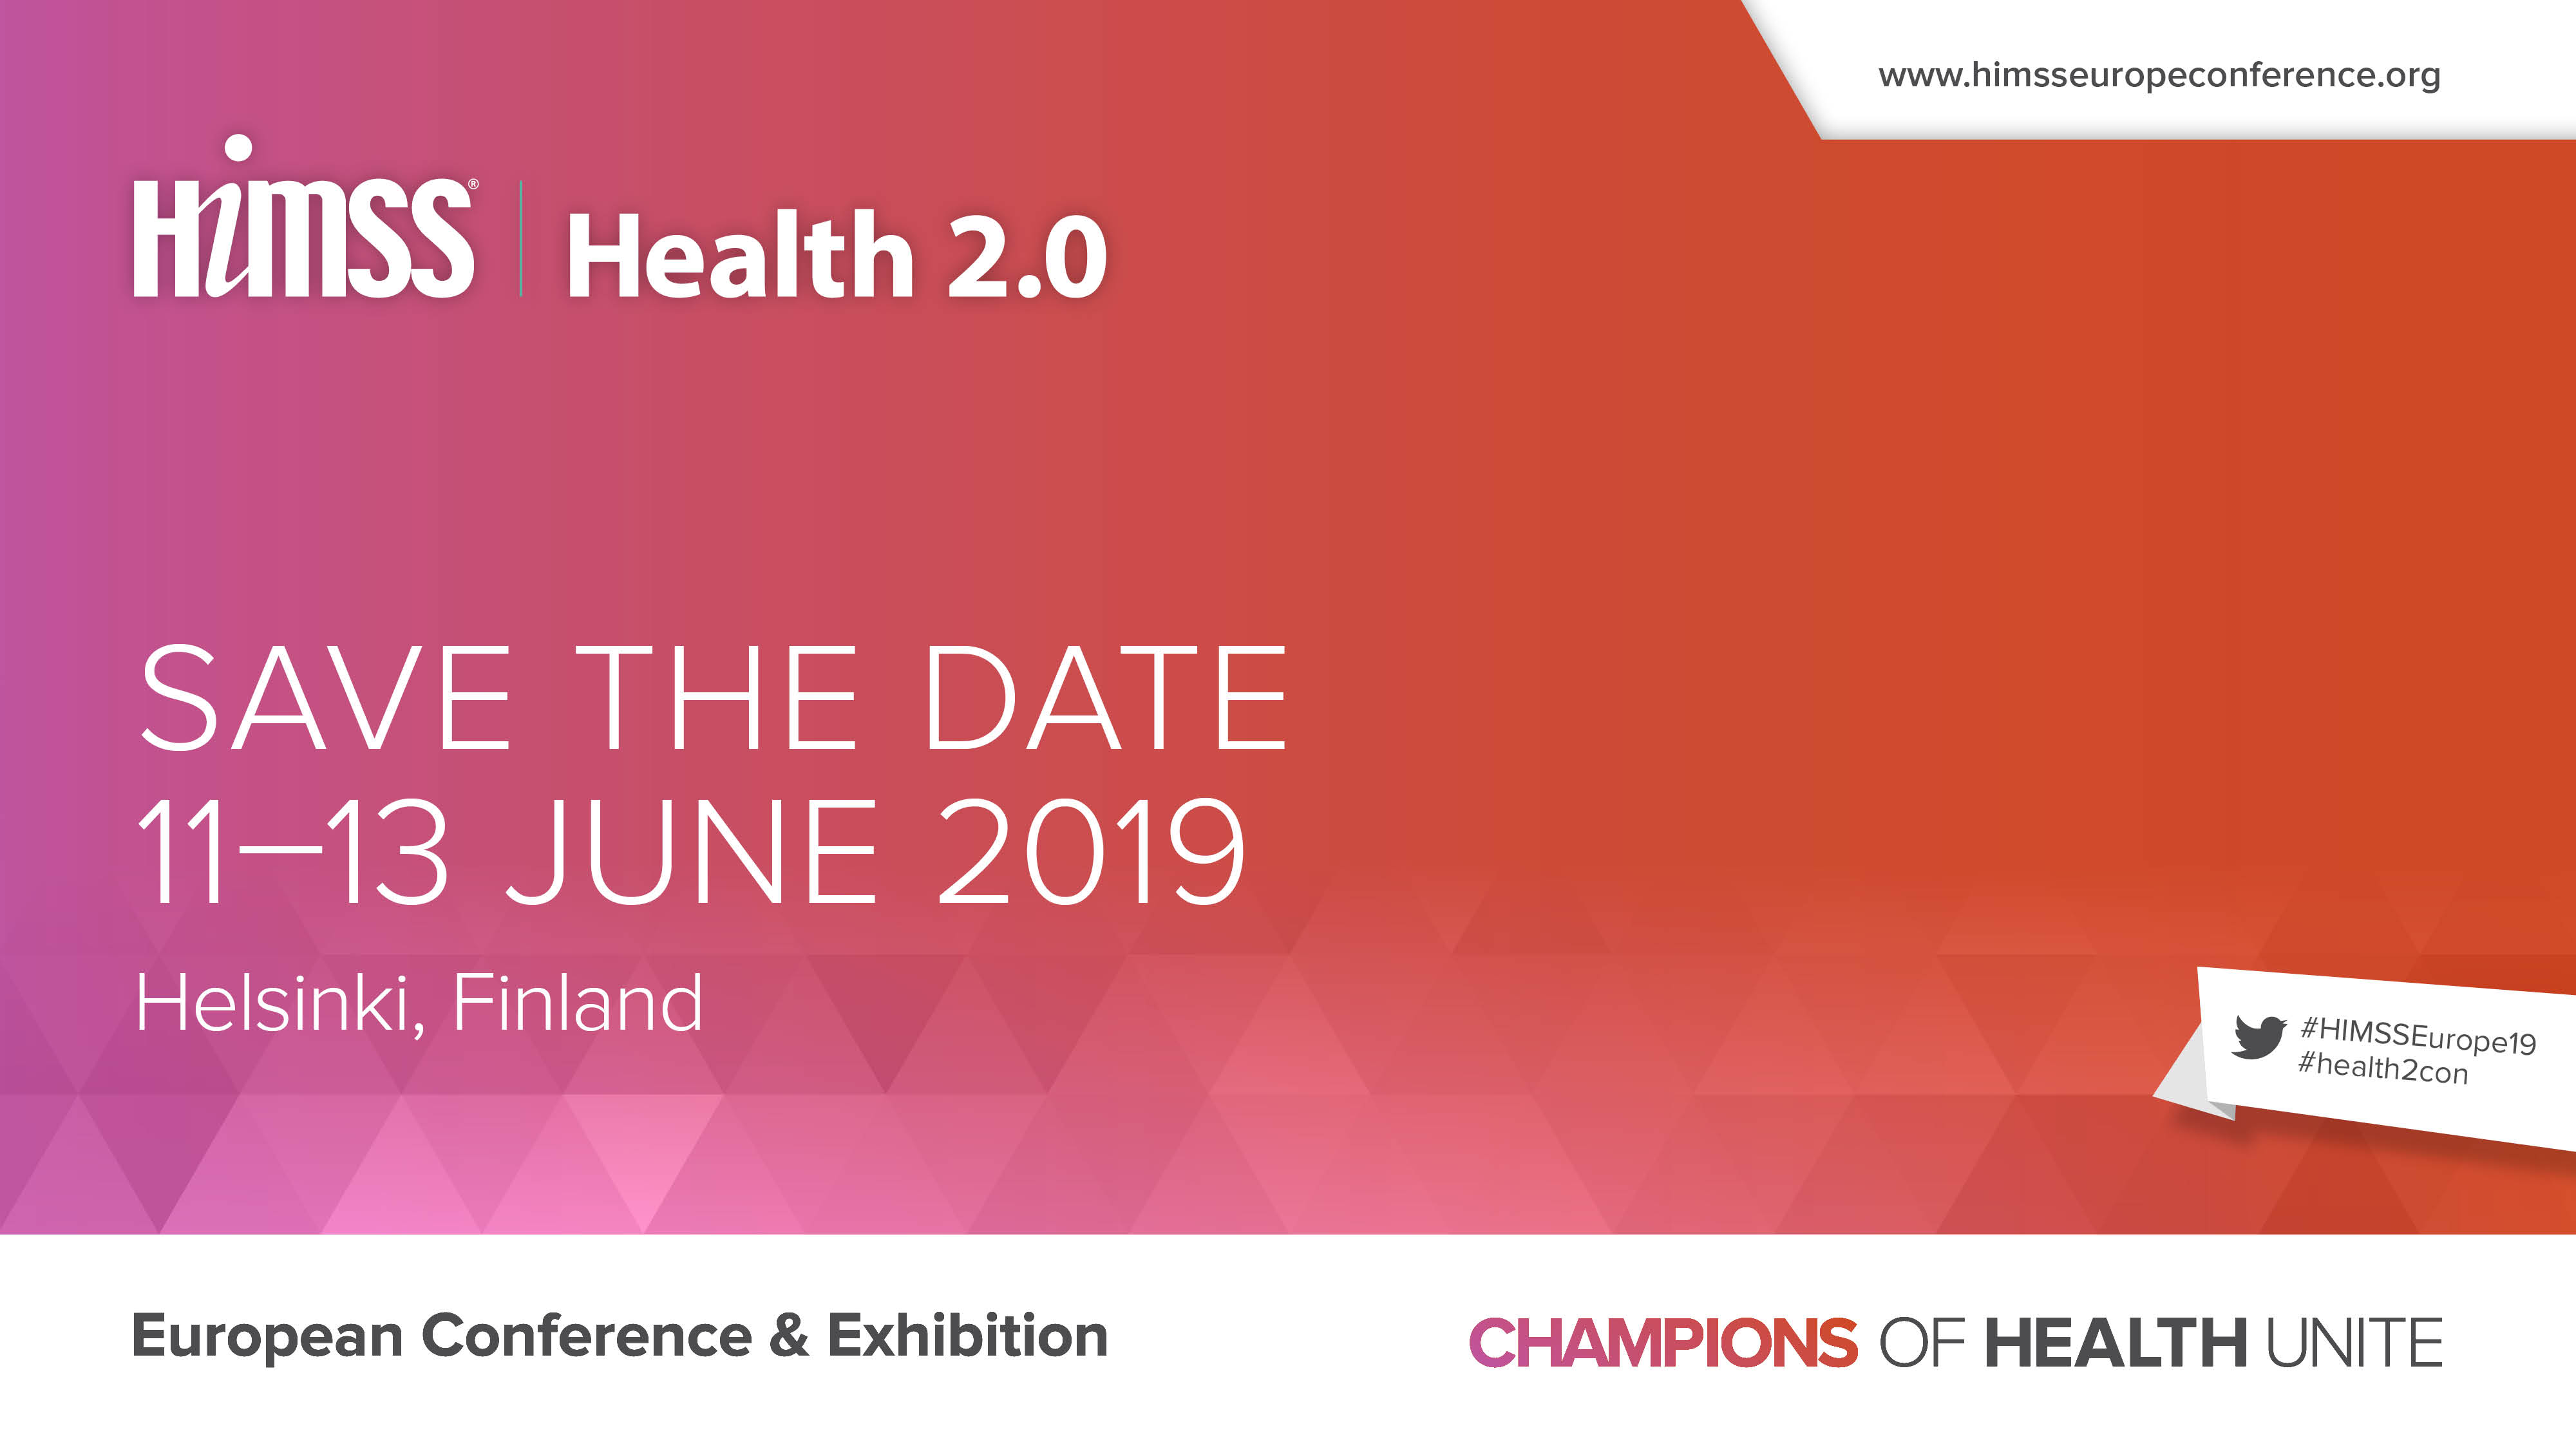 HIMSS AND HEALTH 2.0 EUROPEAN CONFERENCE